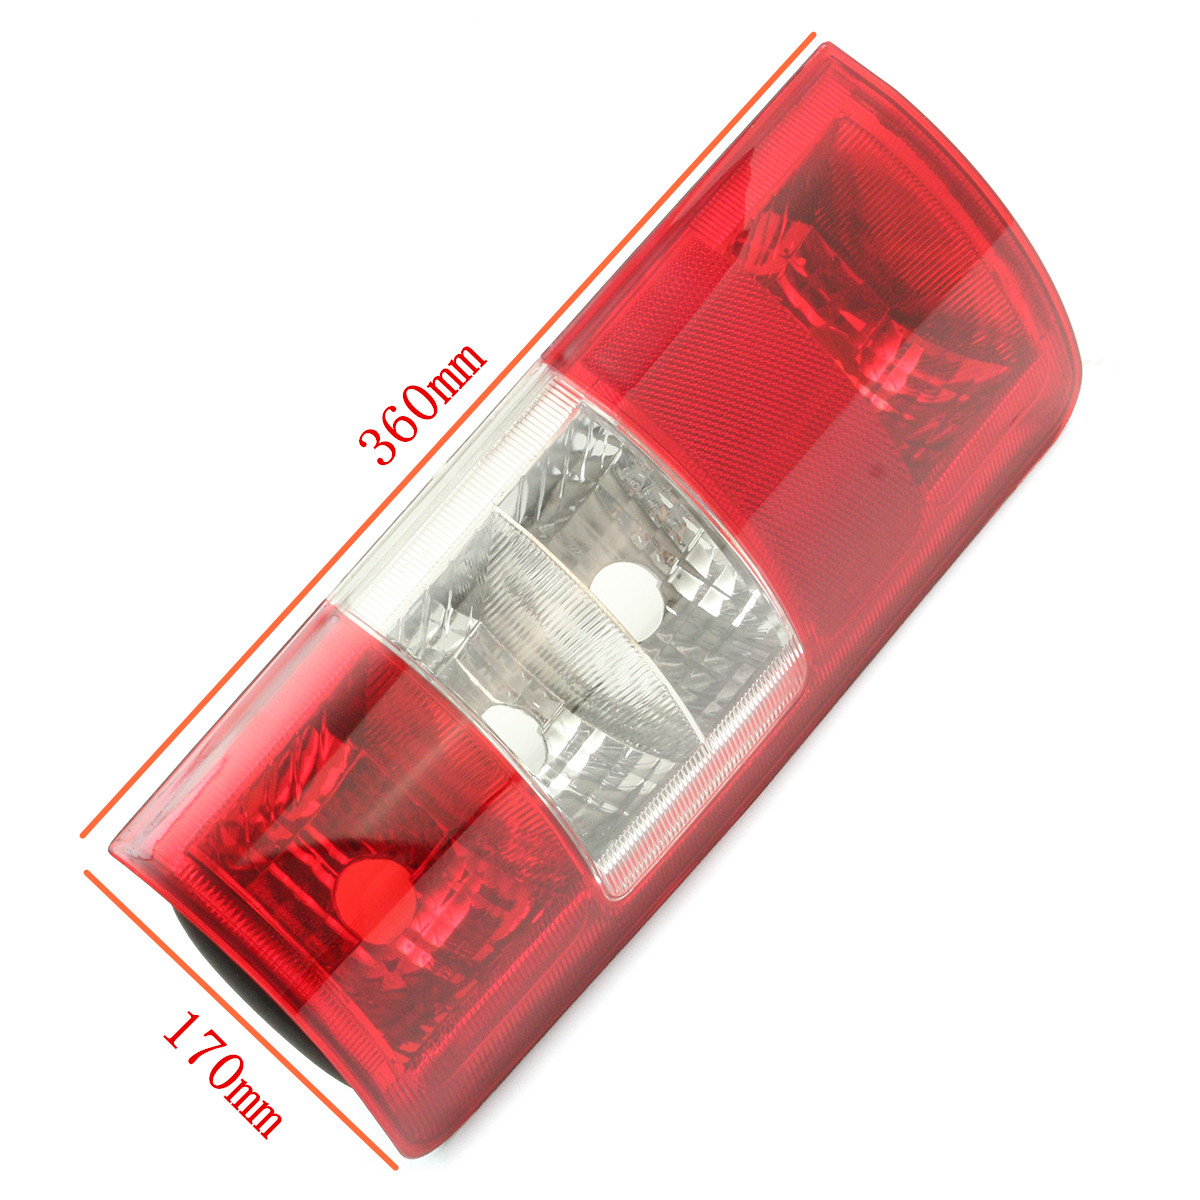 Car Rear Tail Light Cover Backup Lamp Lens Shell Red Pair for Ford Transit Connect 2002-2009